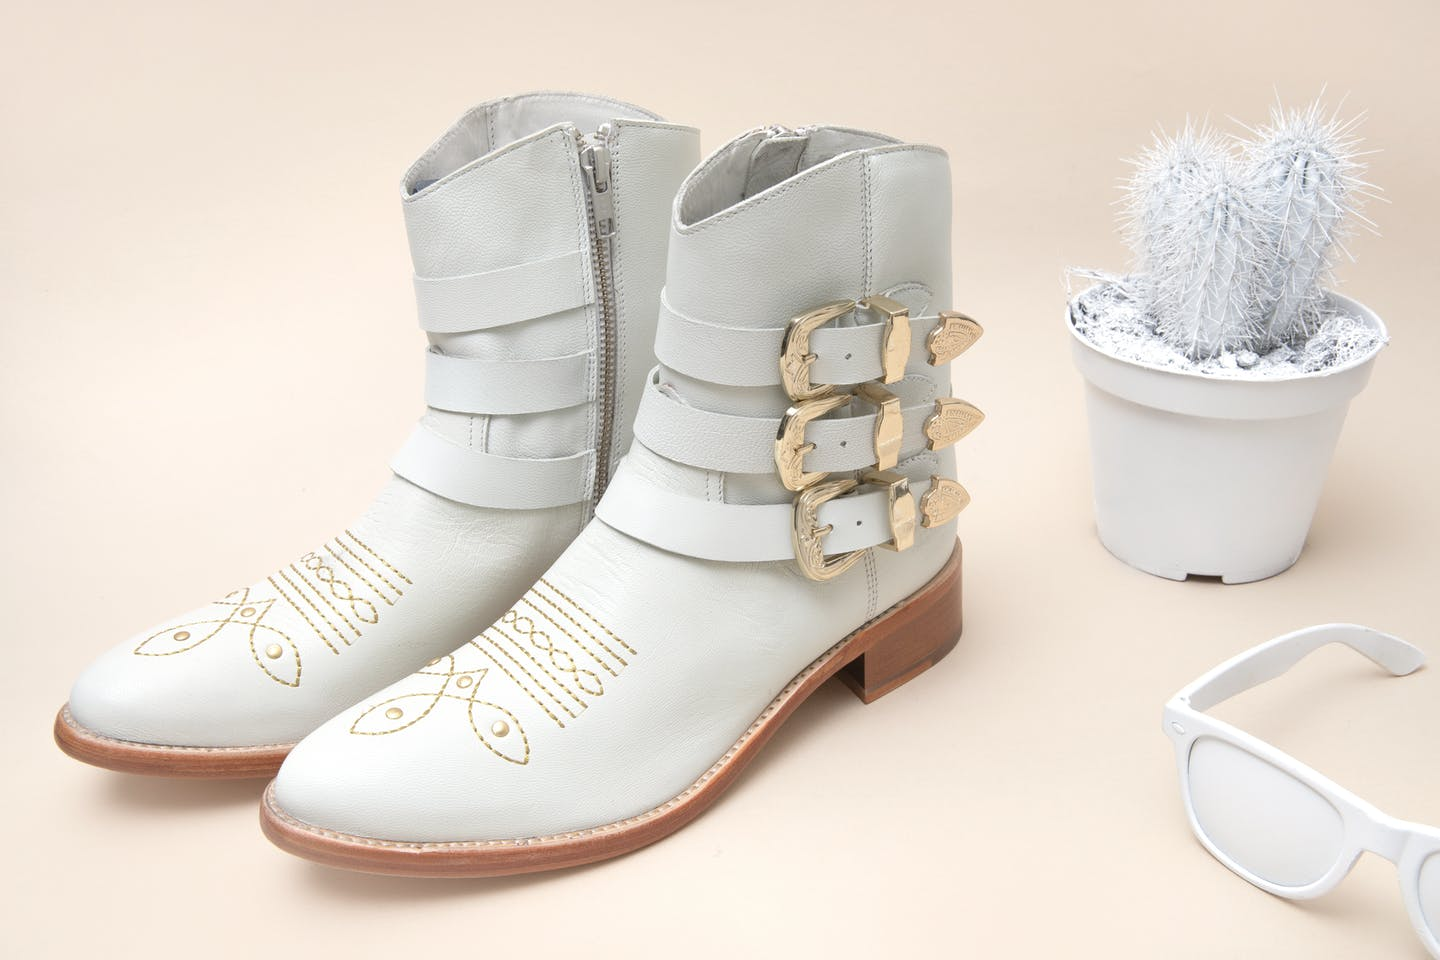 white shoes, white sandals, white ankle boots